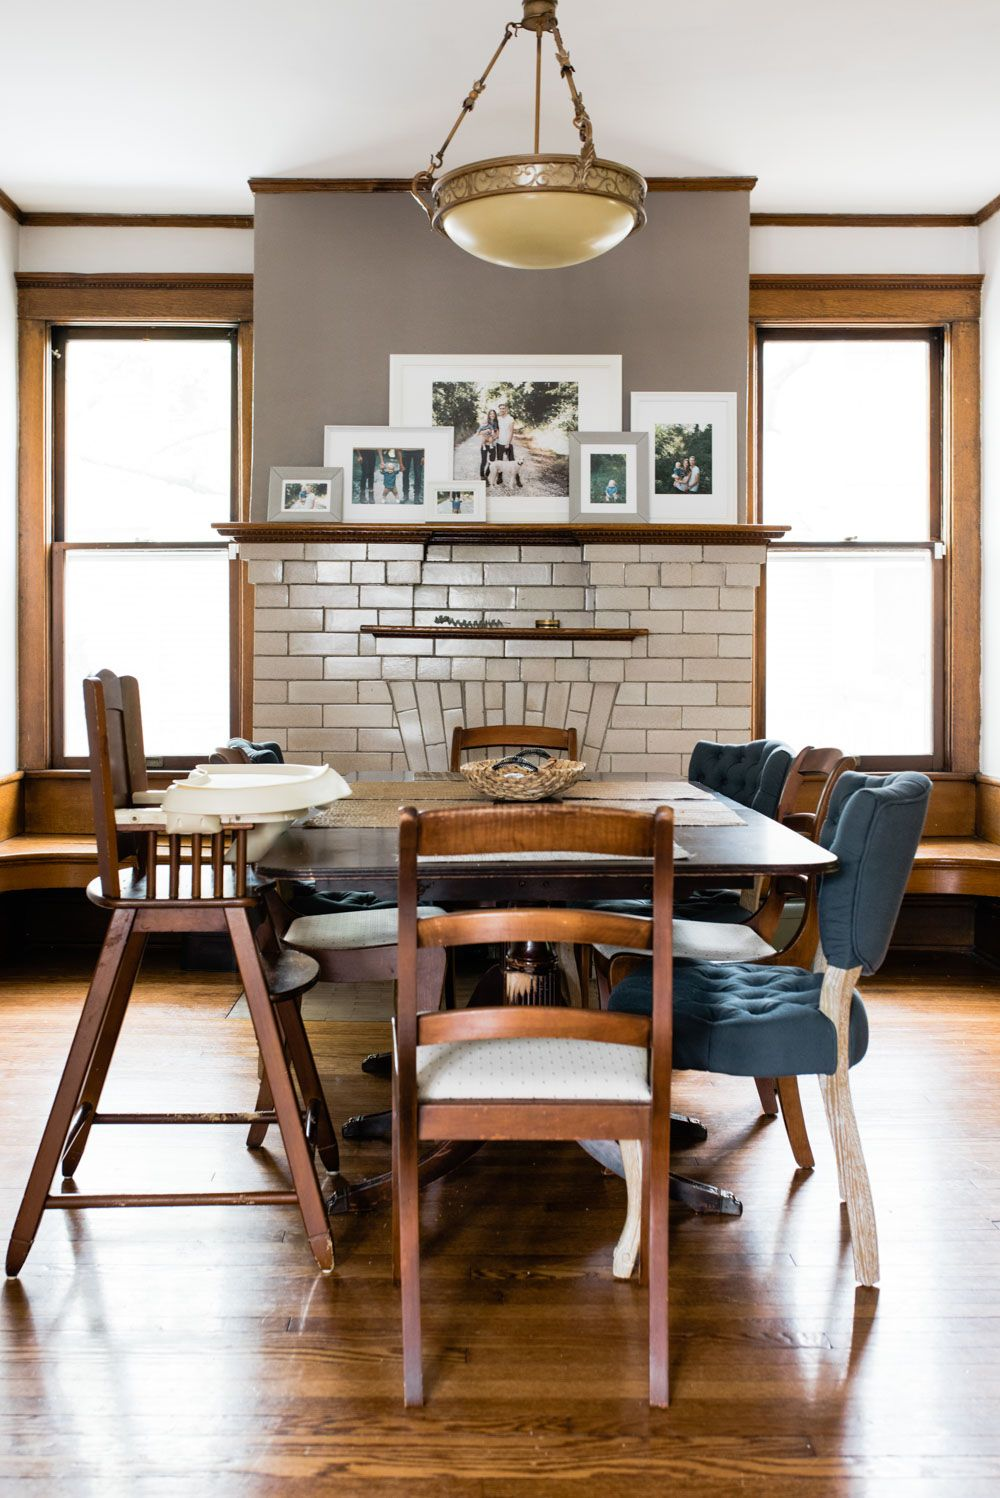 Eclectic Meets Minimal In A Craftsman Charmer Des Moines Ia Design Sponge